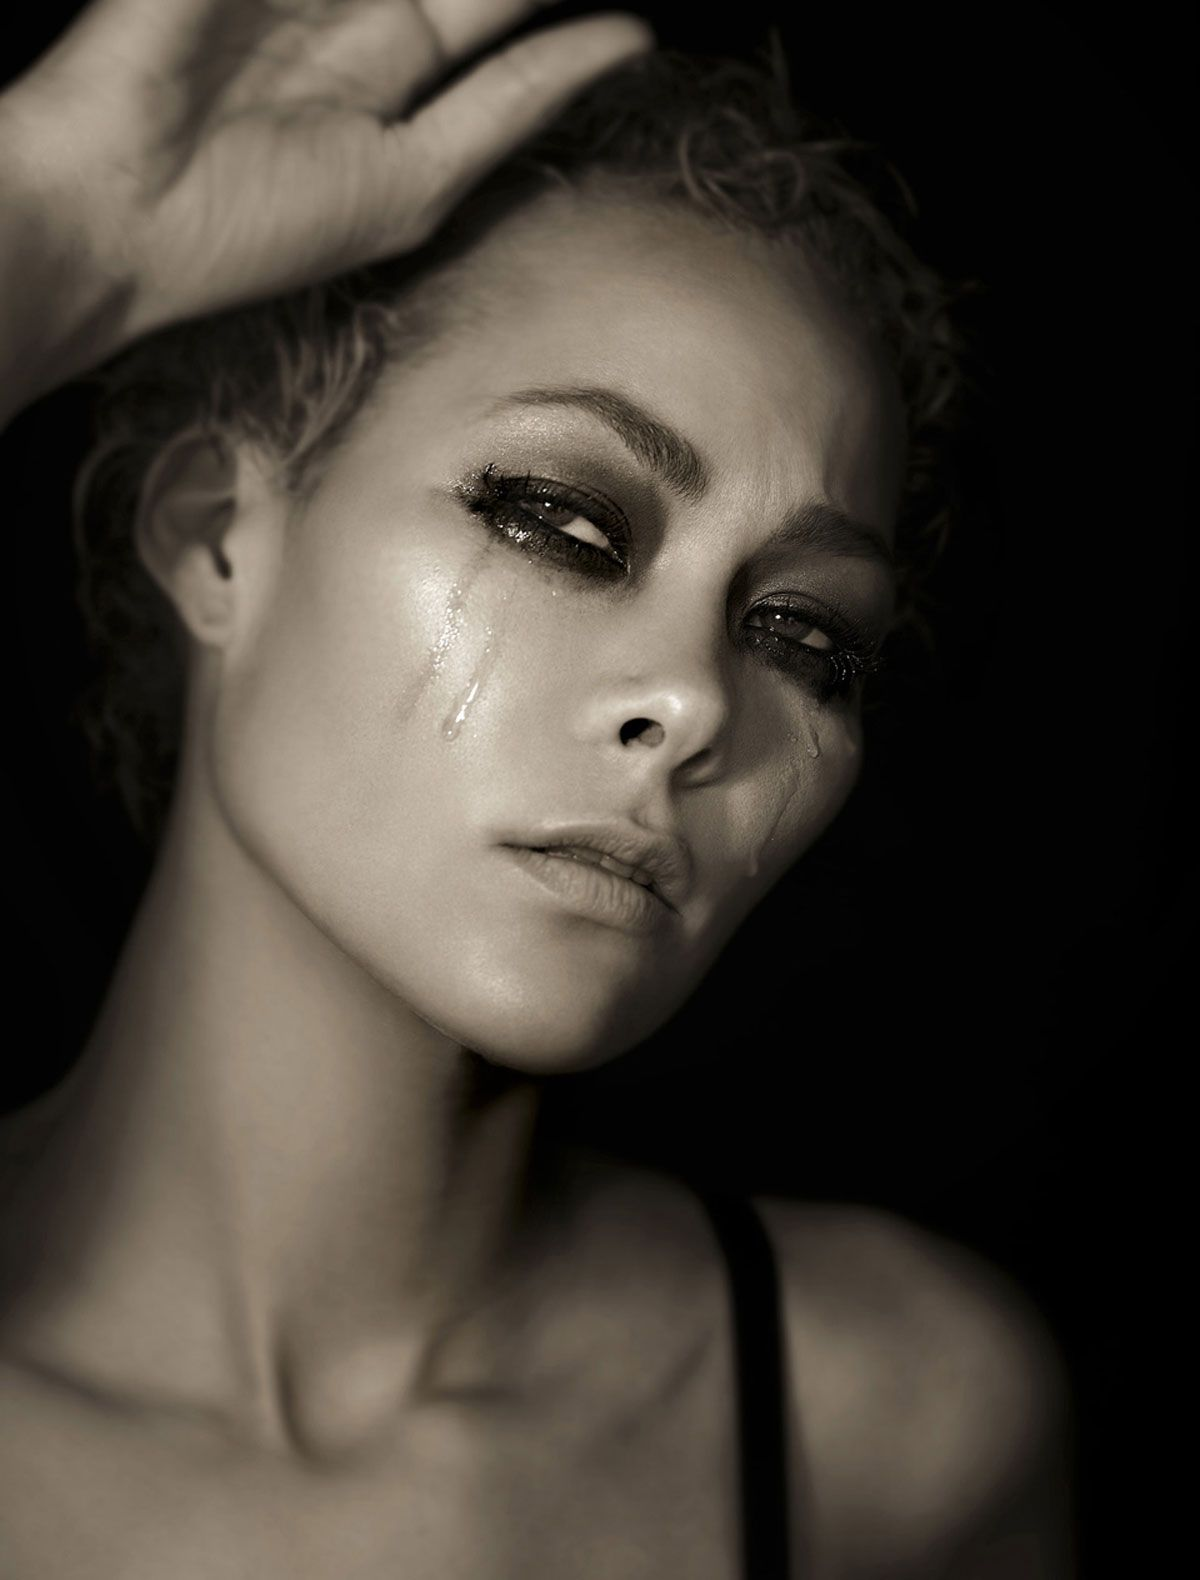 Jade cole emotional black and white beauty shoot photo by tyra banks cycle 6